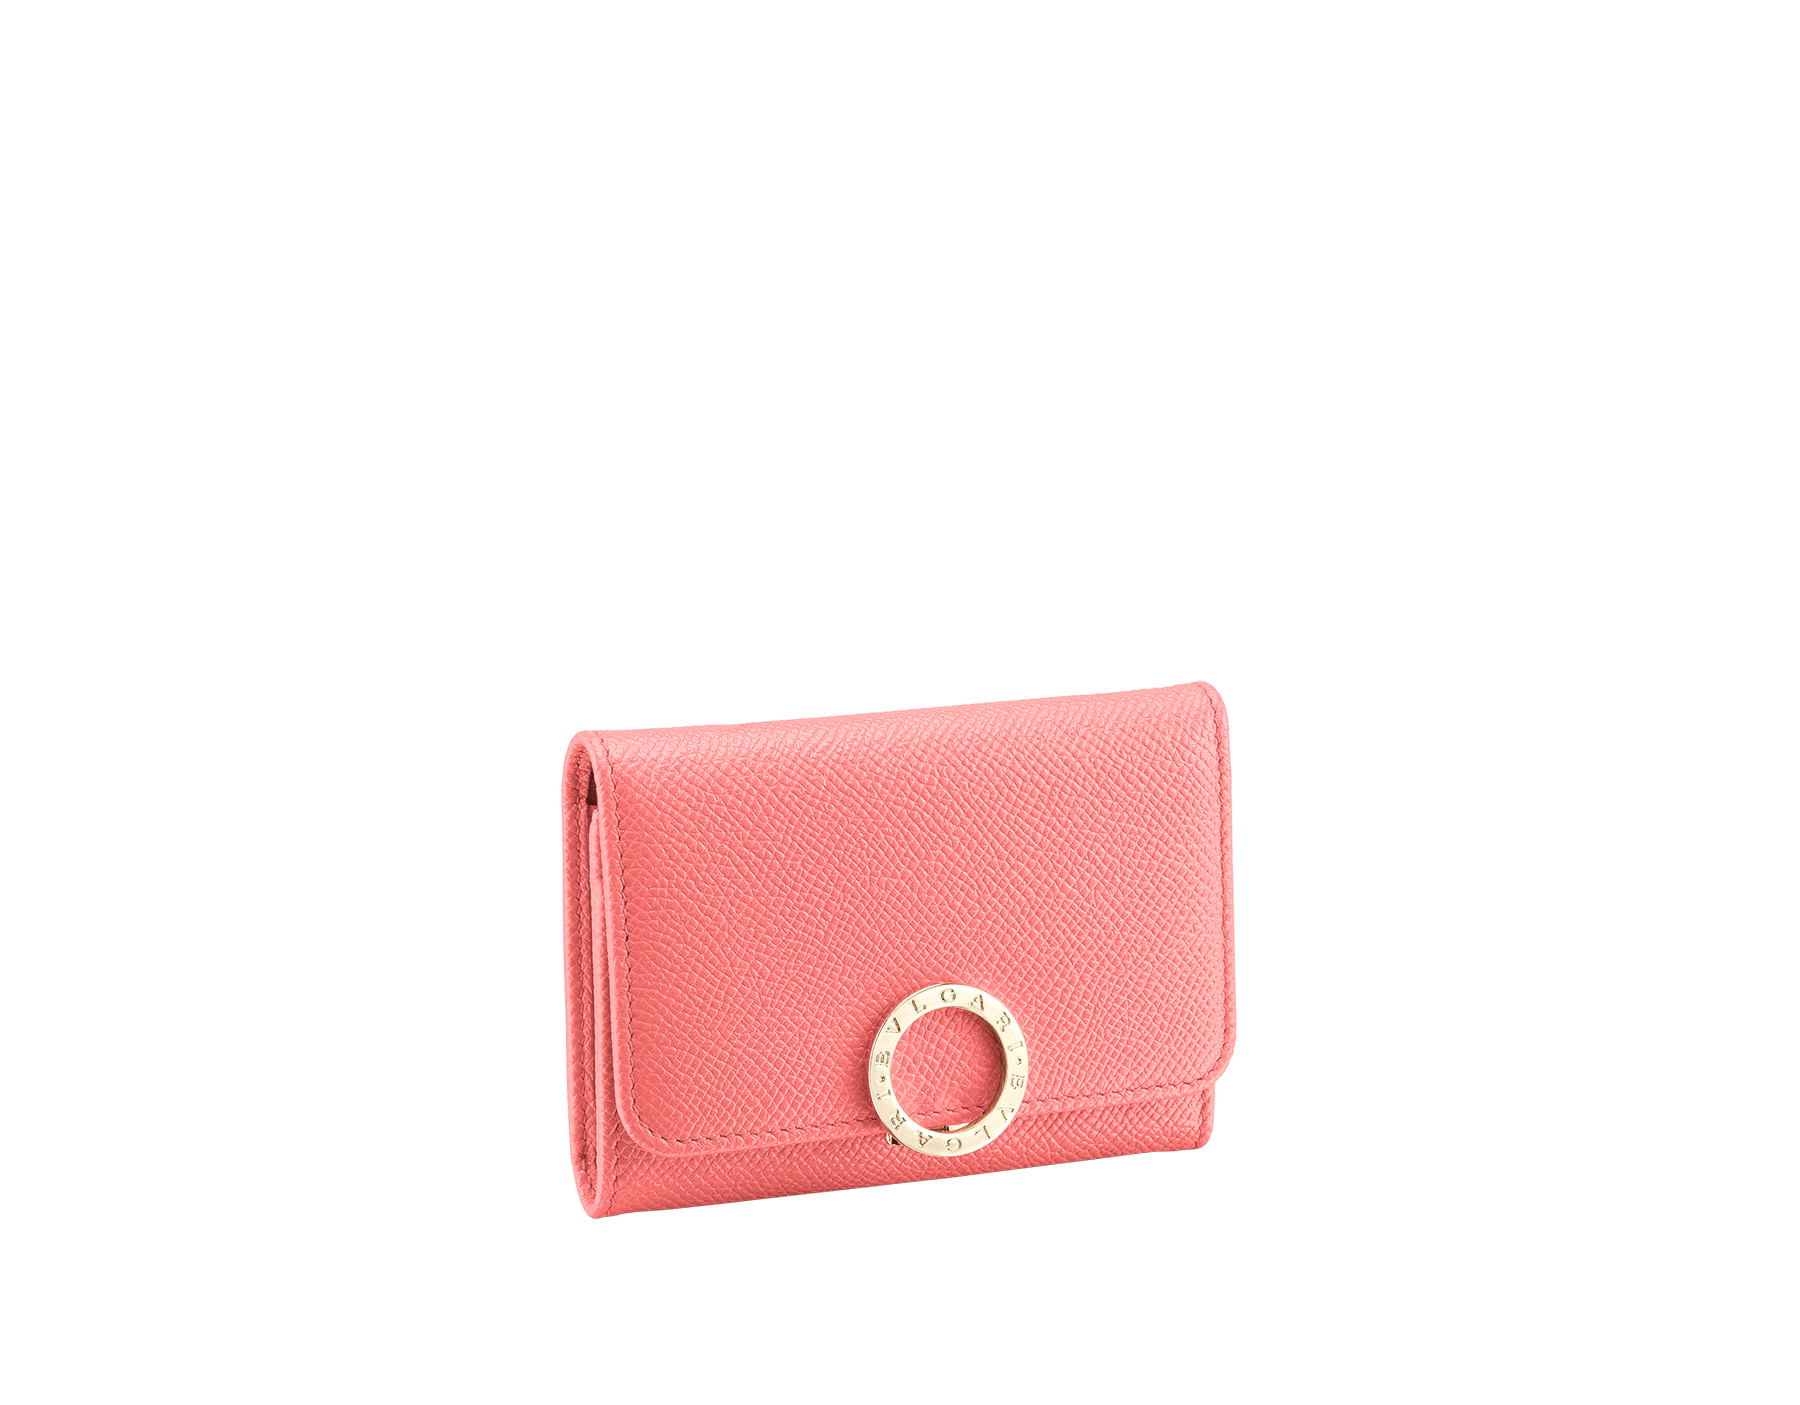 BVLGARI BVLGARI business card holder in silky coral bright grain calf leather and flamingo quartz nappa leather. Iconic logo clip closure in light gold plated brass. 289040 image 1